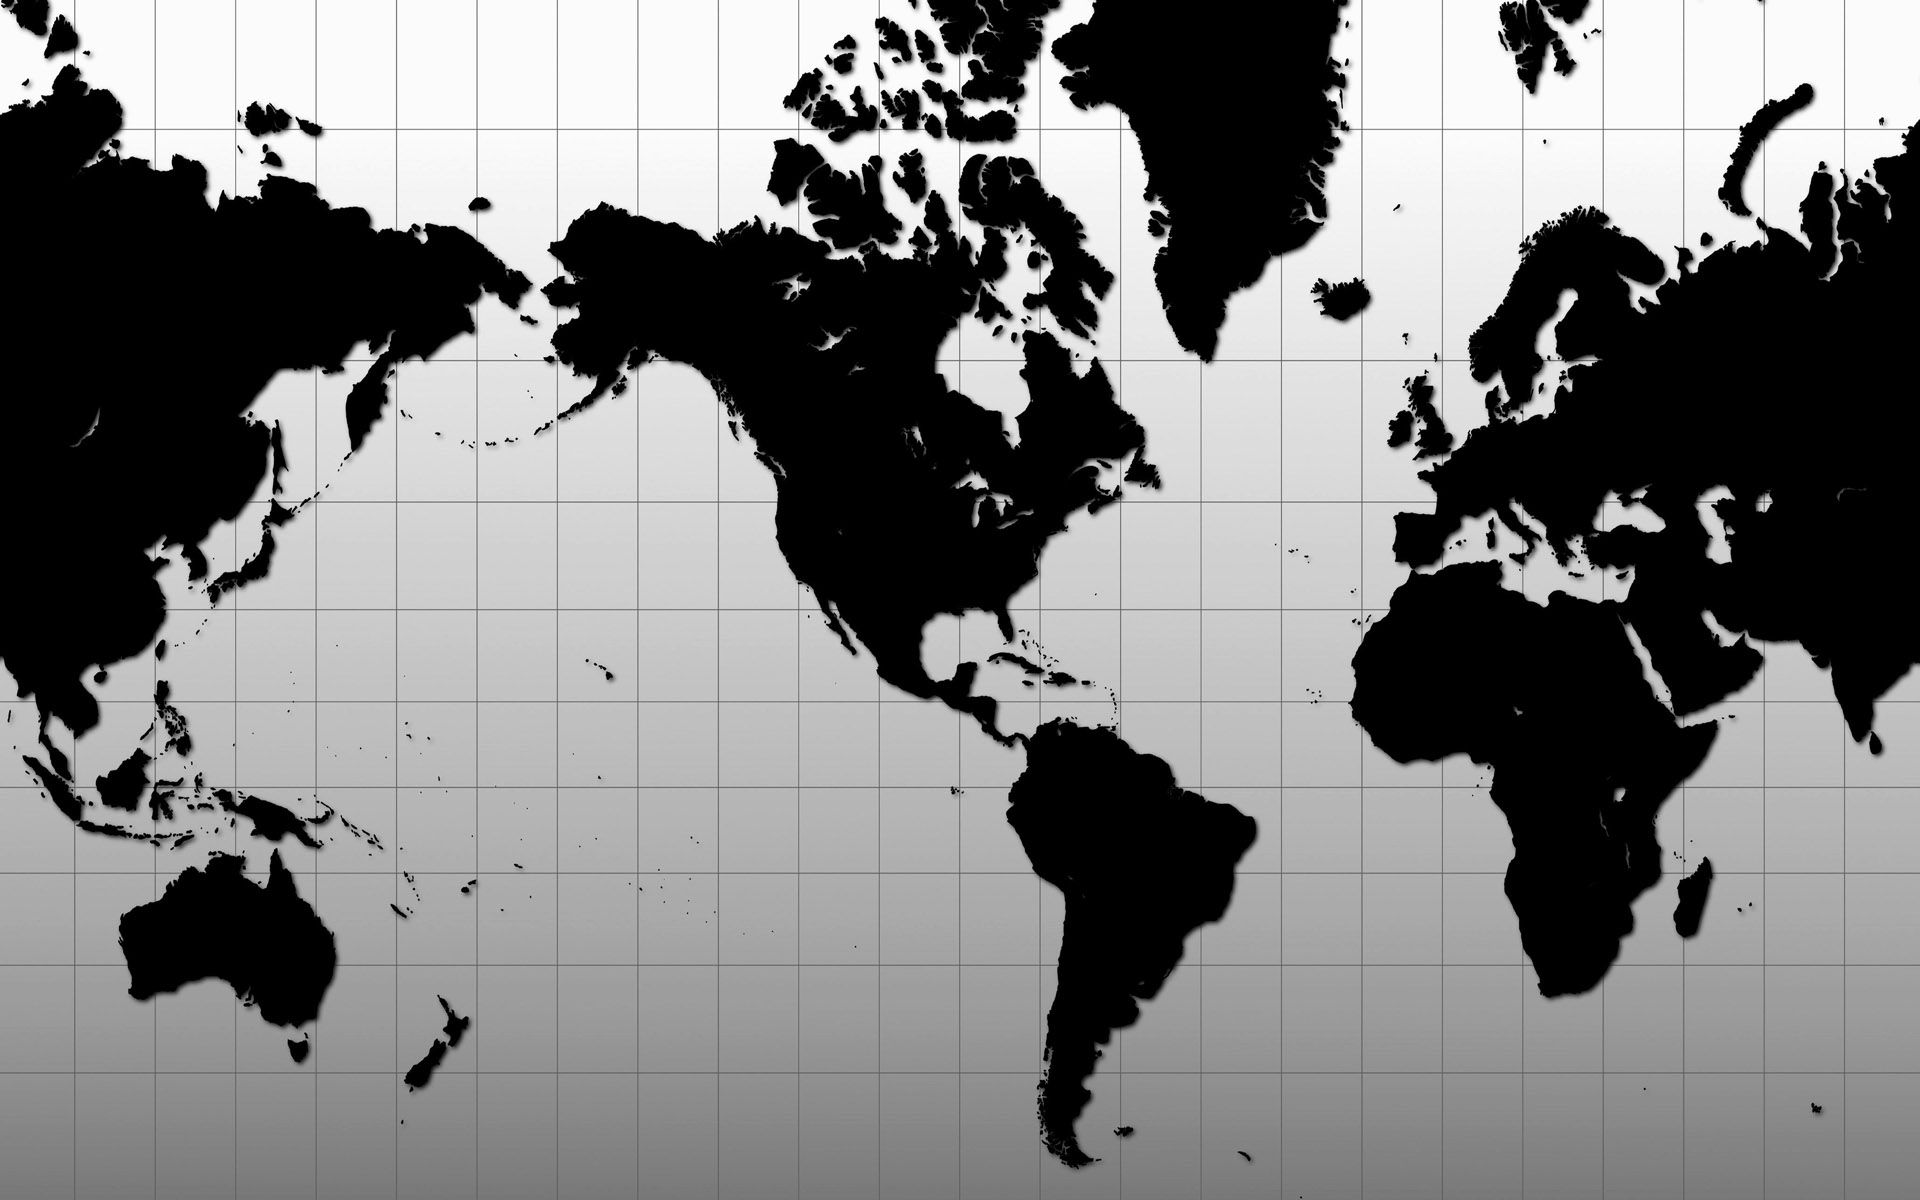 World map black and white hd wallpapers download free world map world map black and white hd wallpapers download free world map gumiabroncs Images